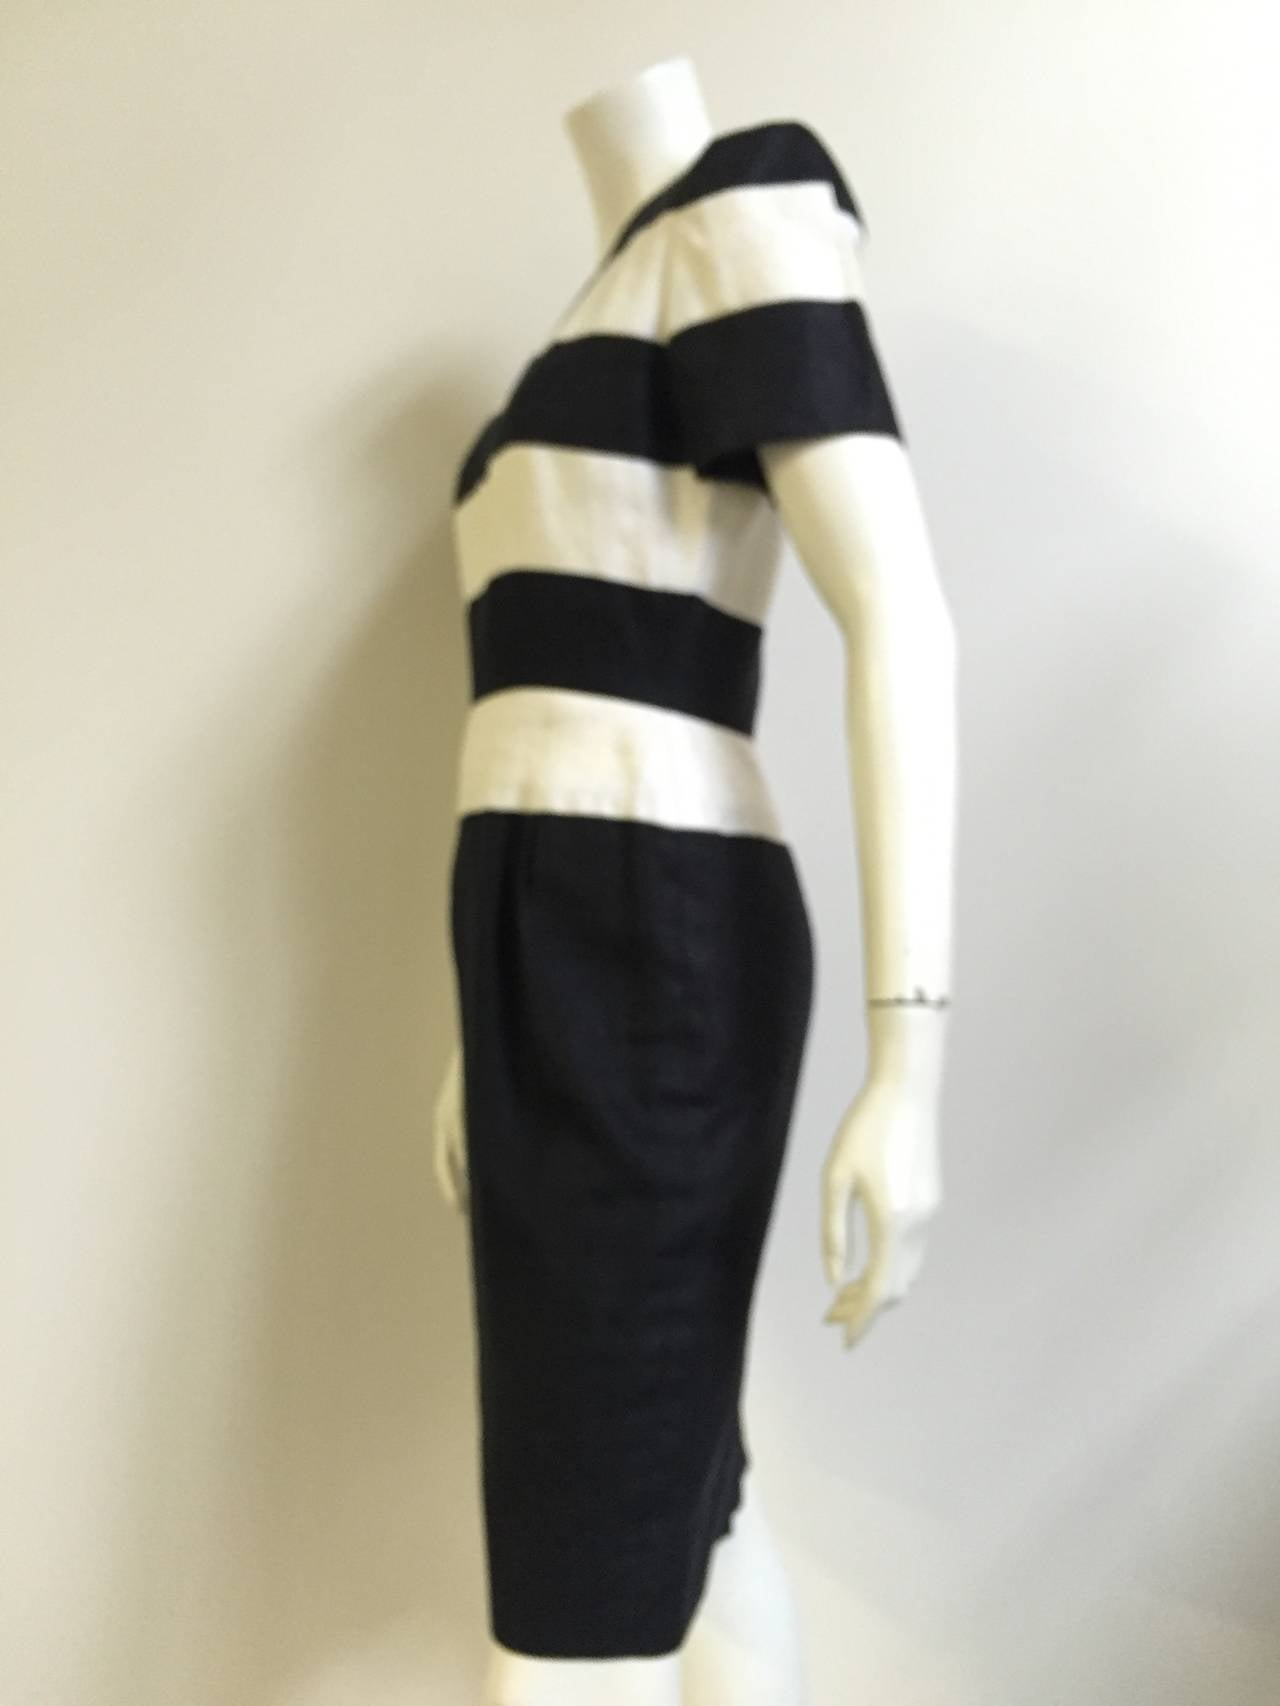 Scaasi 80s linen striped sheath dress size 4. 6